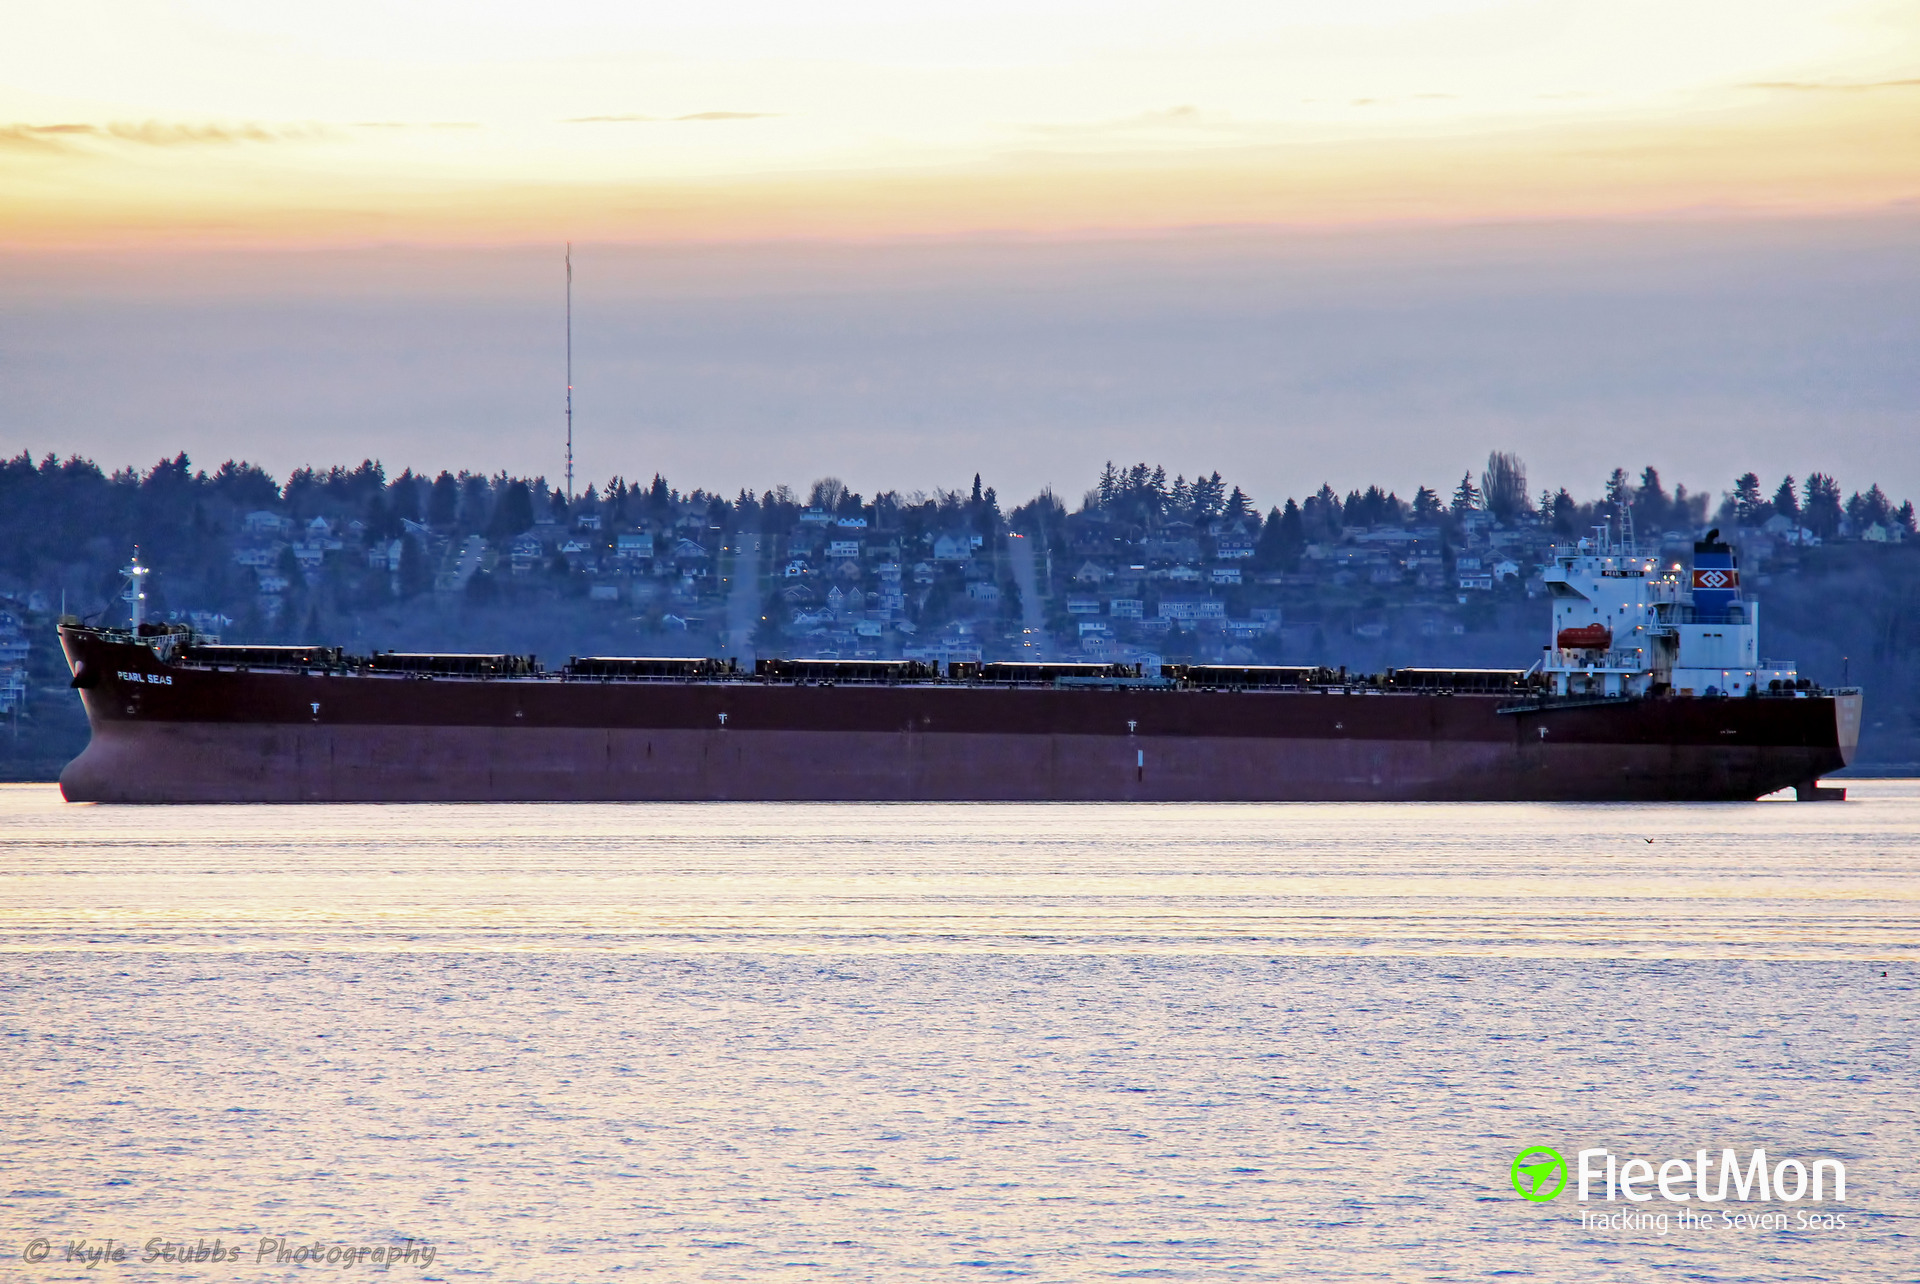 Bulk carrier Pearl Seas troubled in the Pacific